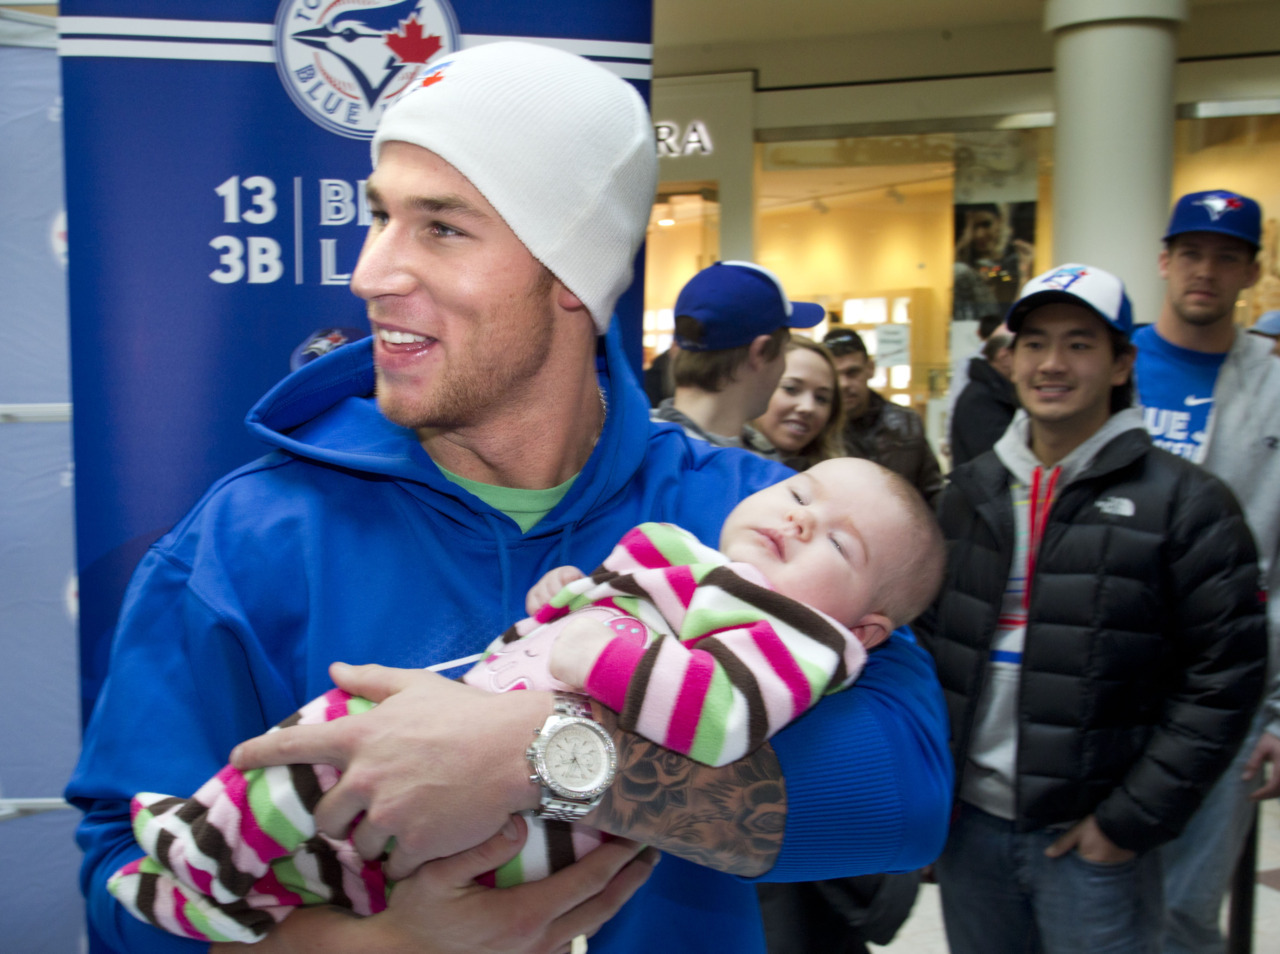 Sports-related baby photo of the day: The Blue Jays' Brett Lawrie with two and Aislyn Farquharson. Members of the Toronto Blue Jays stopped by the St Laurent Shopping Centre in Ottawa to meet with fans and sign autographs.The Post's John Lott writes on manager John Farrell. For his team to contend in 2012, he says, Brett Cecil and Colby Rasmus must snap out of their 2011 stupors.His narrative fans out from there, focusing first on a problematic rotation and pausing for a look at the question marks in left field, with a few other brow-knitting stops along the way.Farrell's conclusion: His Toronto Blue Jays, as currently constituted, have what it takes to win 10 more games and make the playoffs this year. Photo: Chris Mikula/Postmedia News